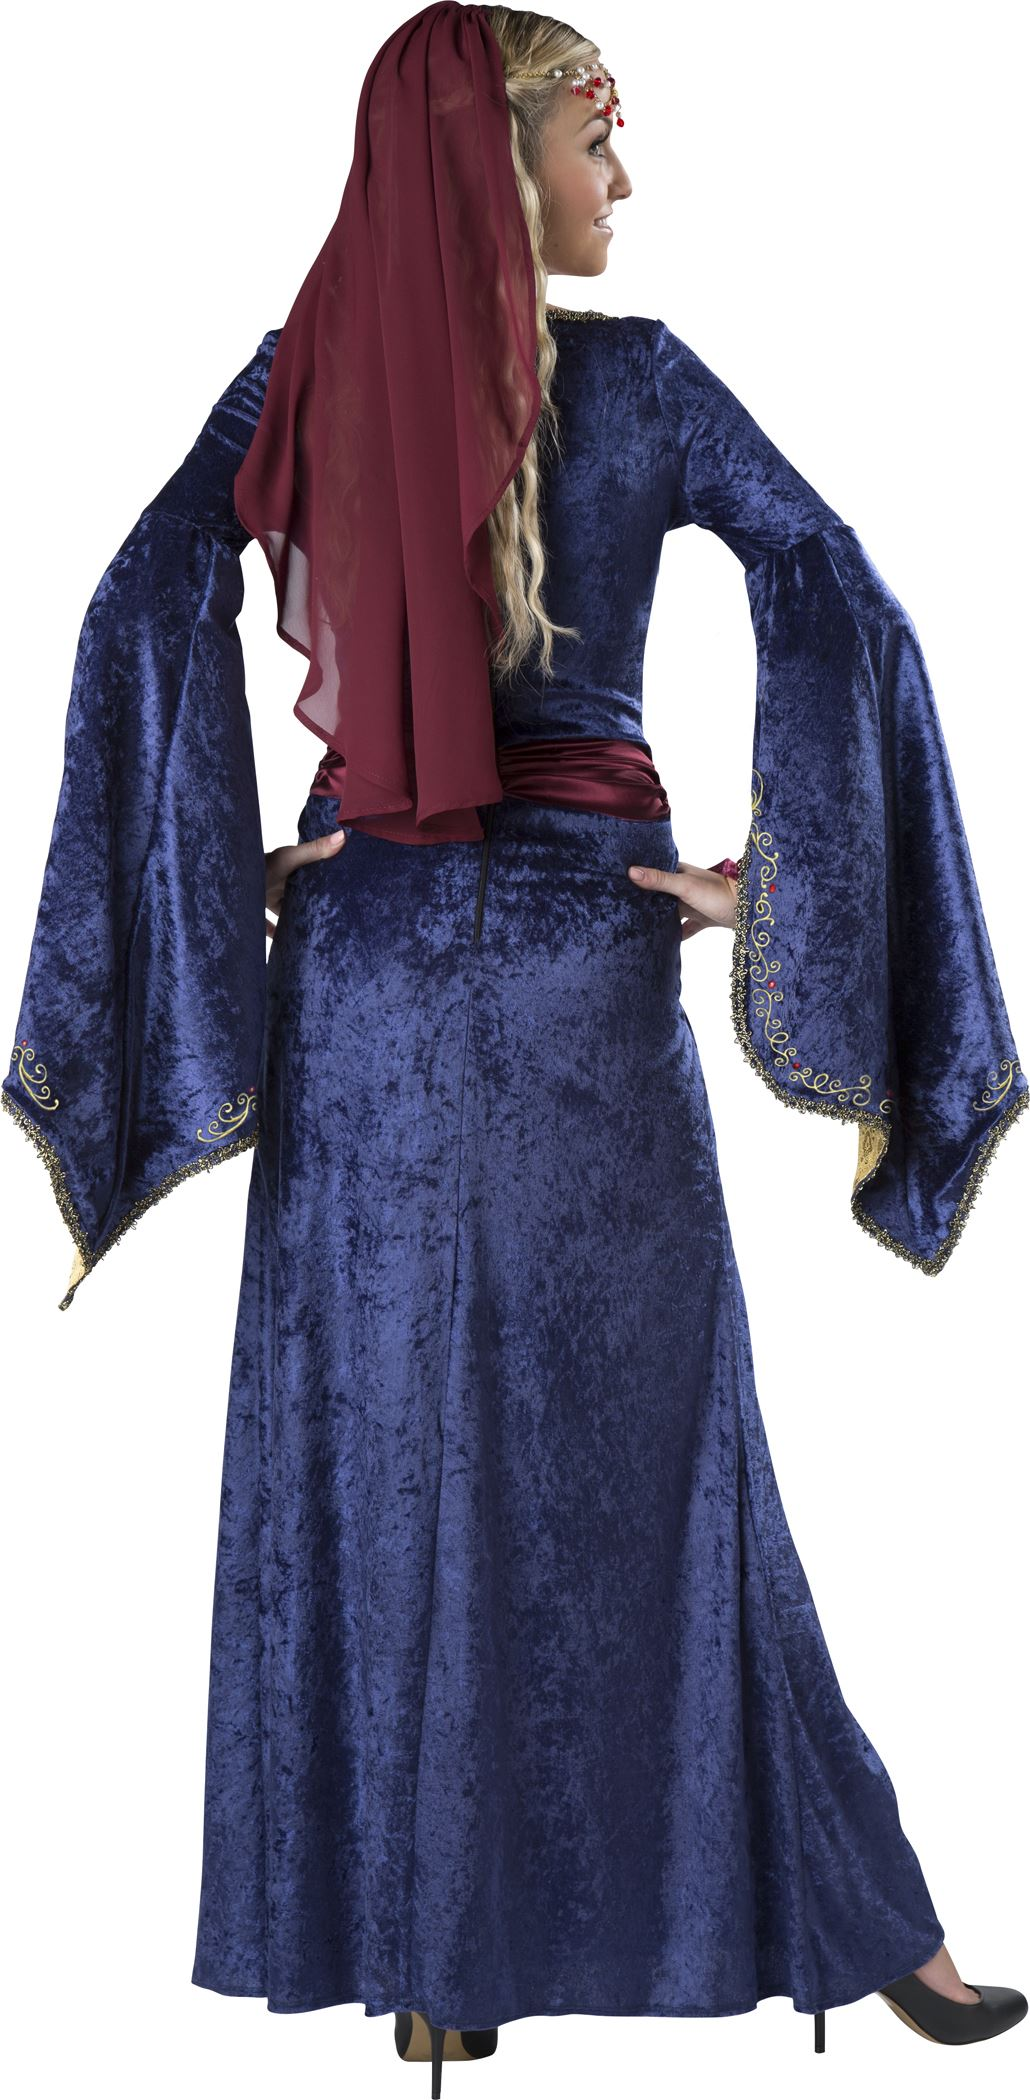 Adult Maid Marian Woman Medieval Costume 125 99 The